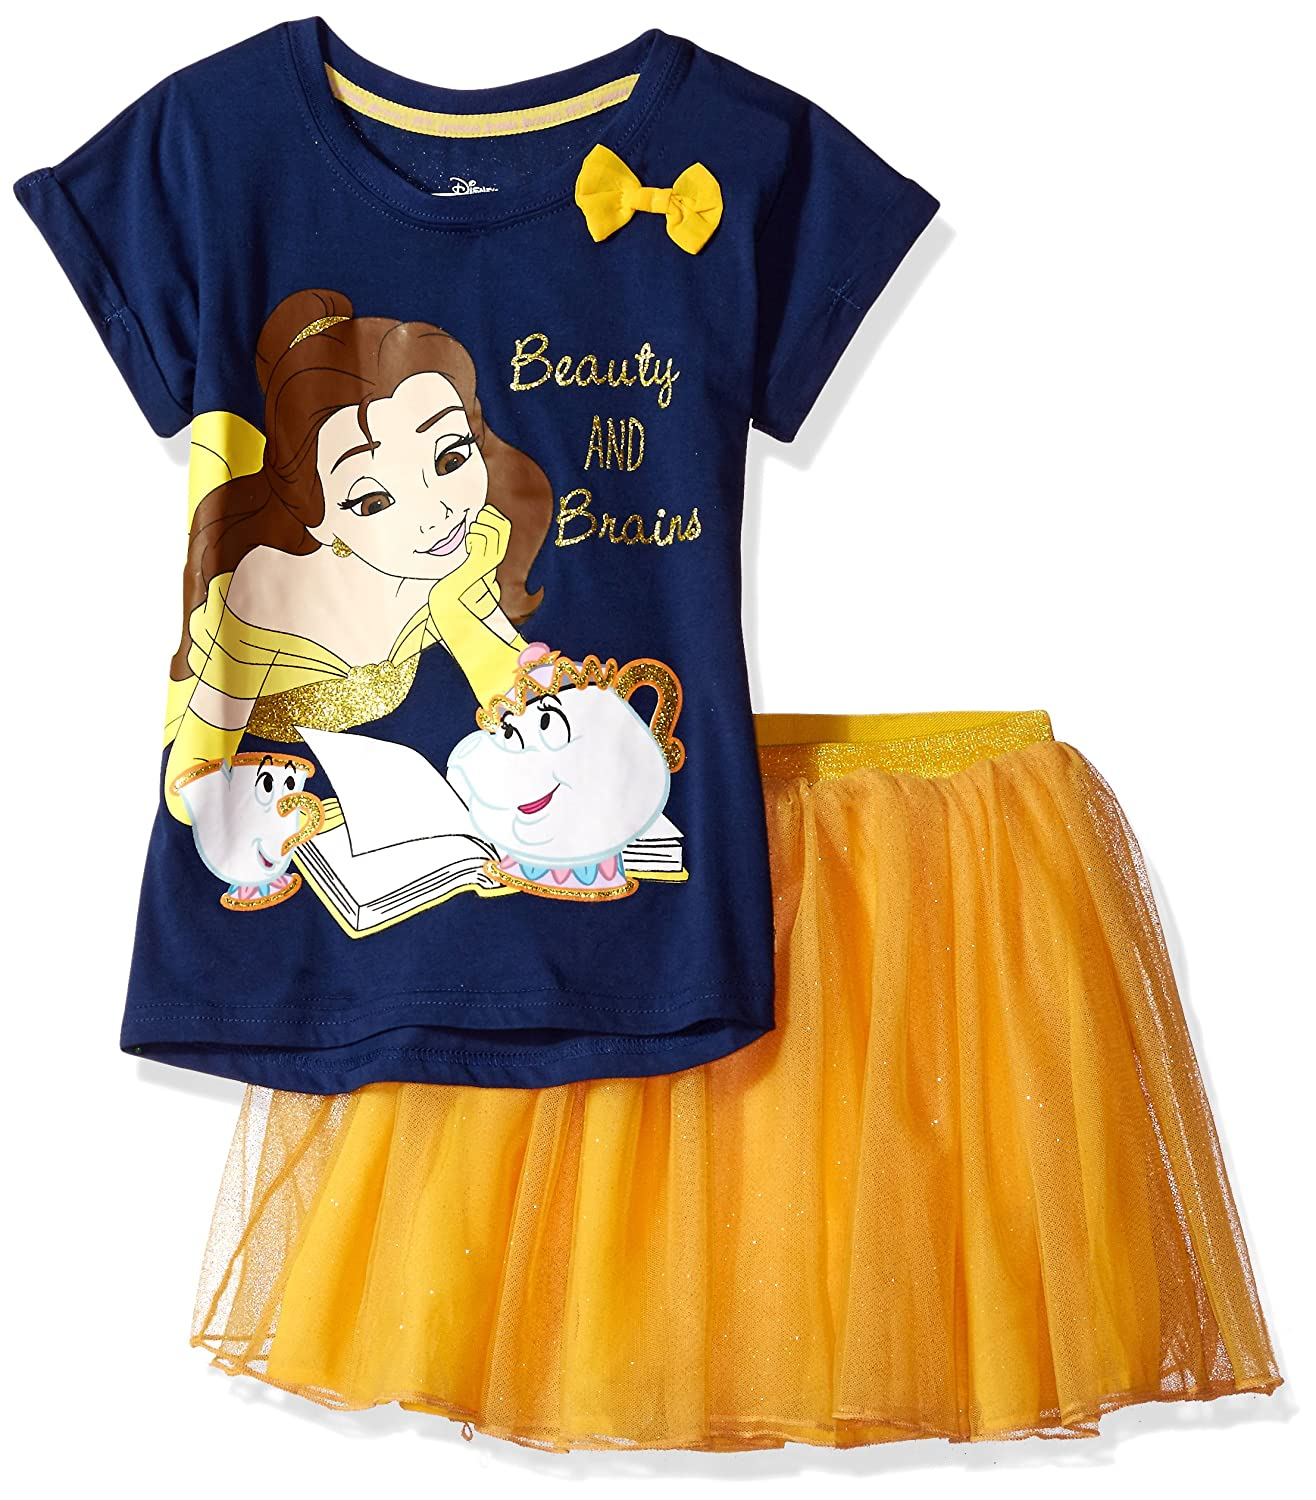 4465d93c3 Amazon.com: Disney Girls' Beauty and the Beast Belle 2-Piece Skirt Set:  Clothing